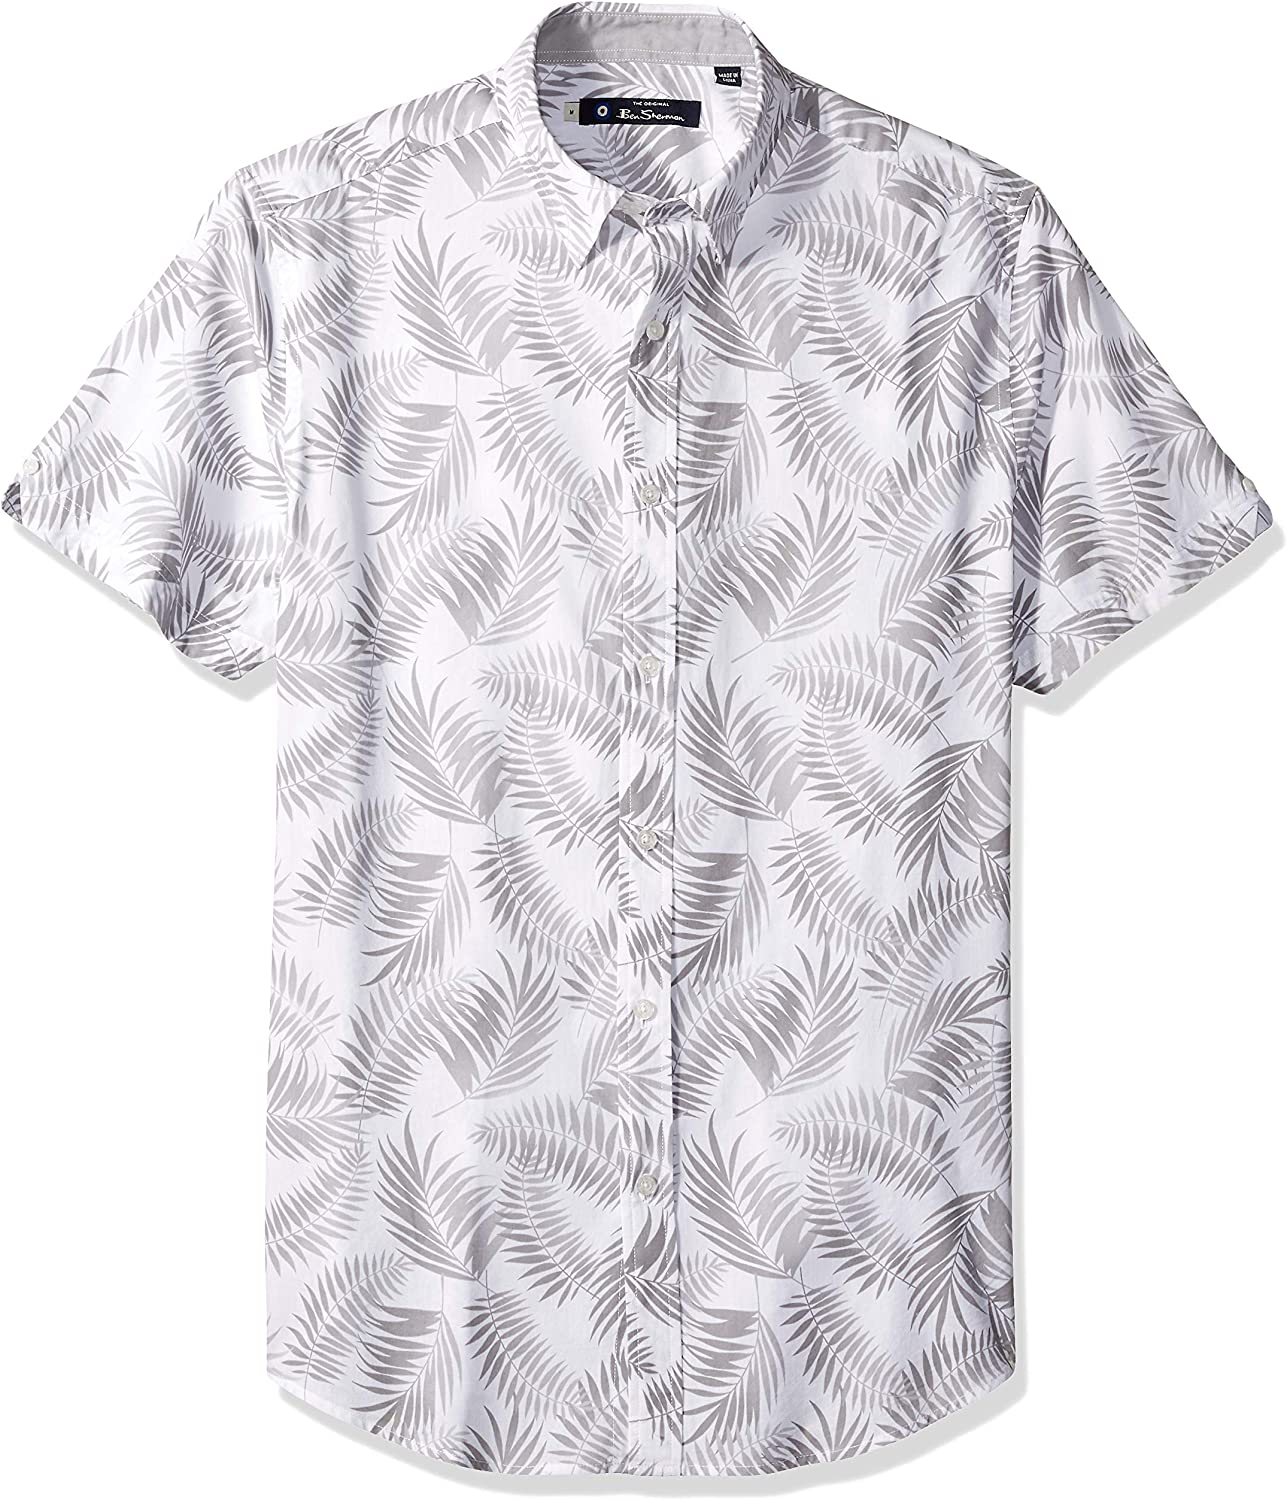 Ben Sherman Ss Shadow Leaf - Camiseta para hombre - Blanco - Large: Amazon.es: Ropa y accesorios